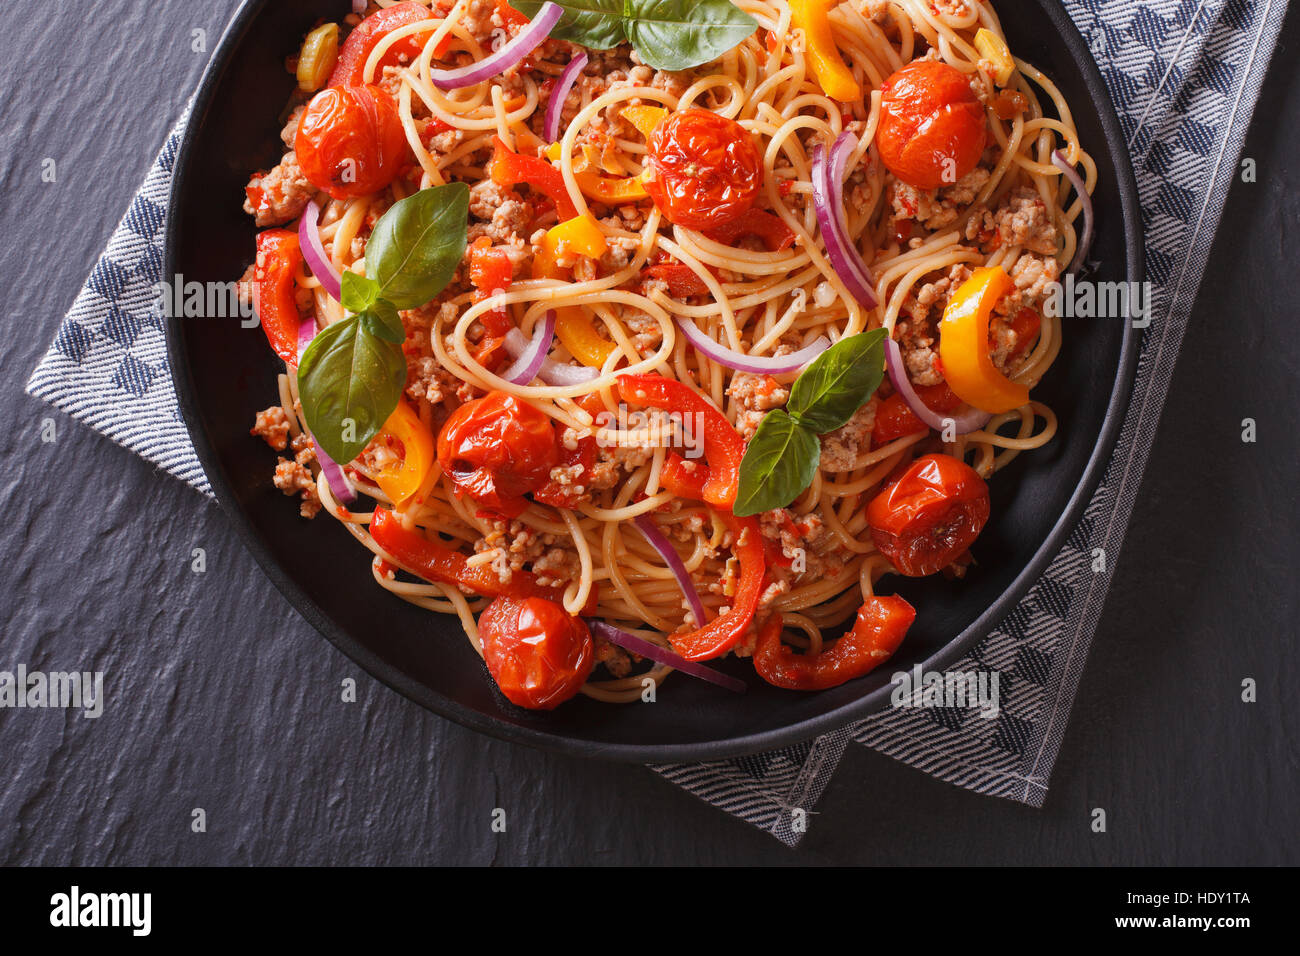 Italian food: pasta with minced meat and vegetables close-up. Horizontal top view - Stock Image